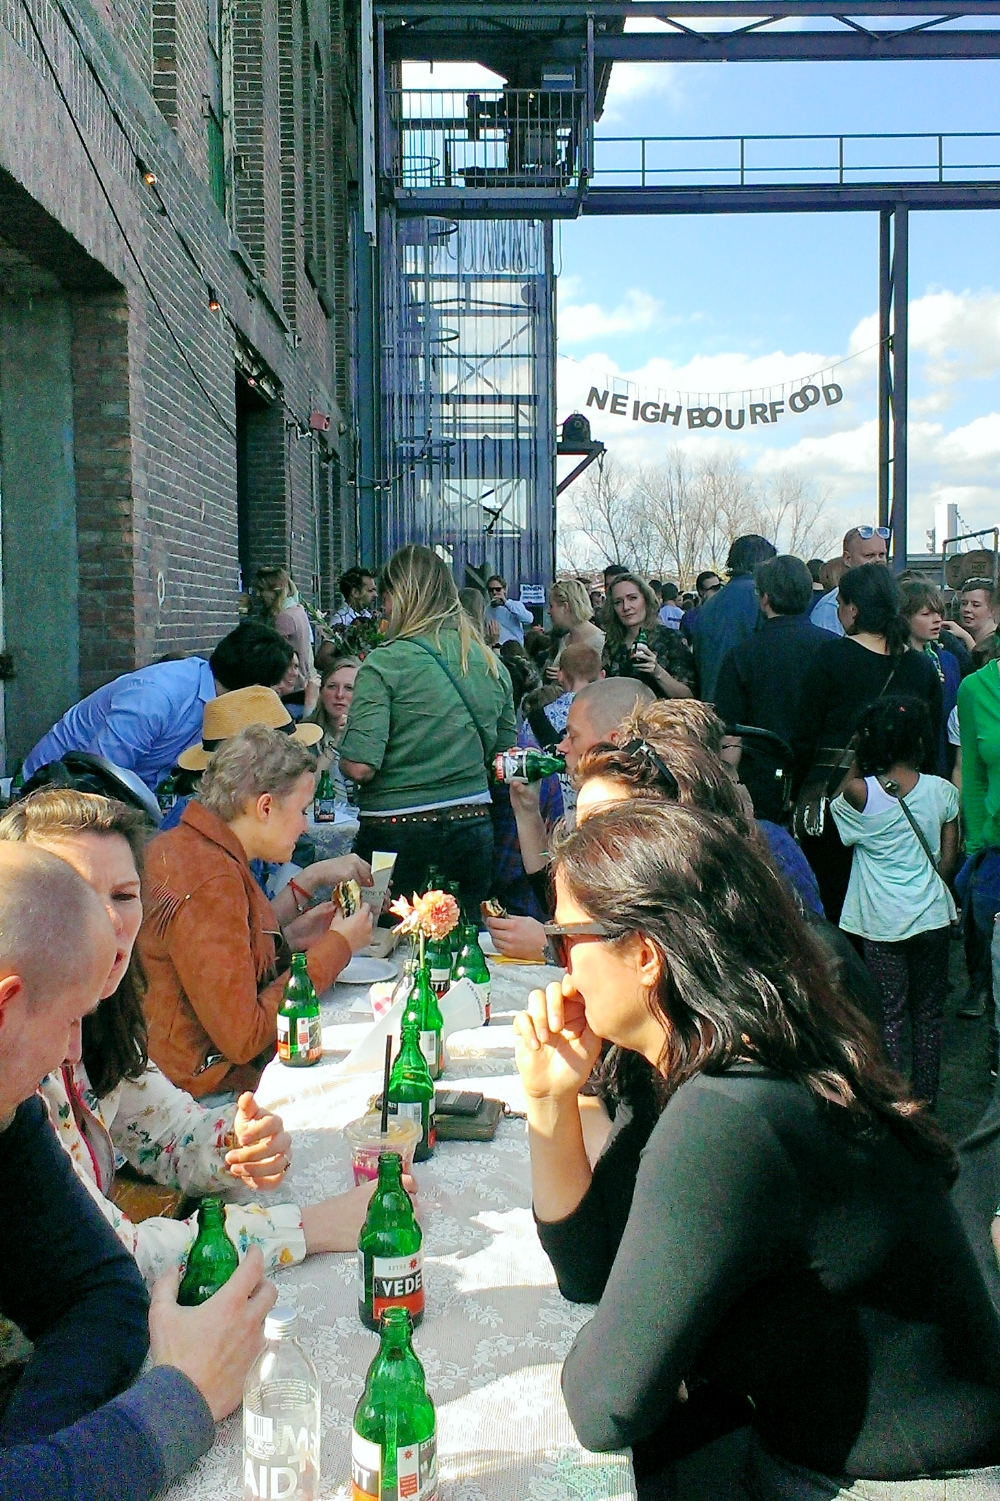 NeighbourFood Market 04 - Den Bosch Tips